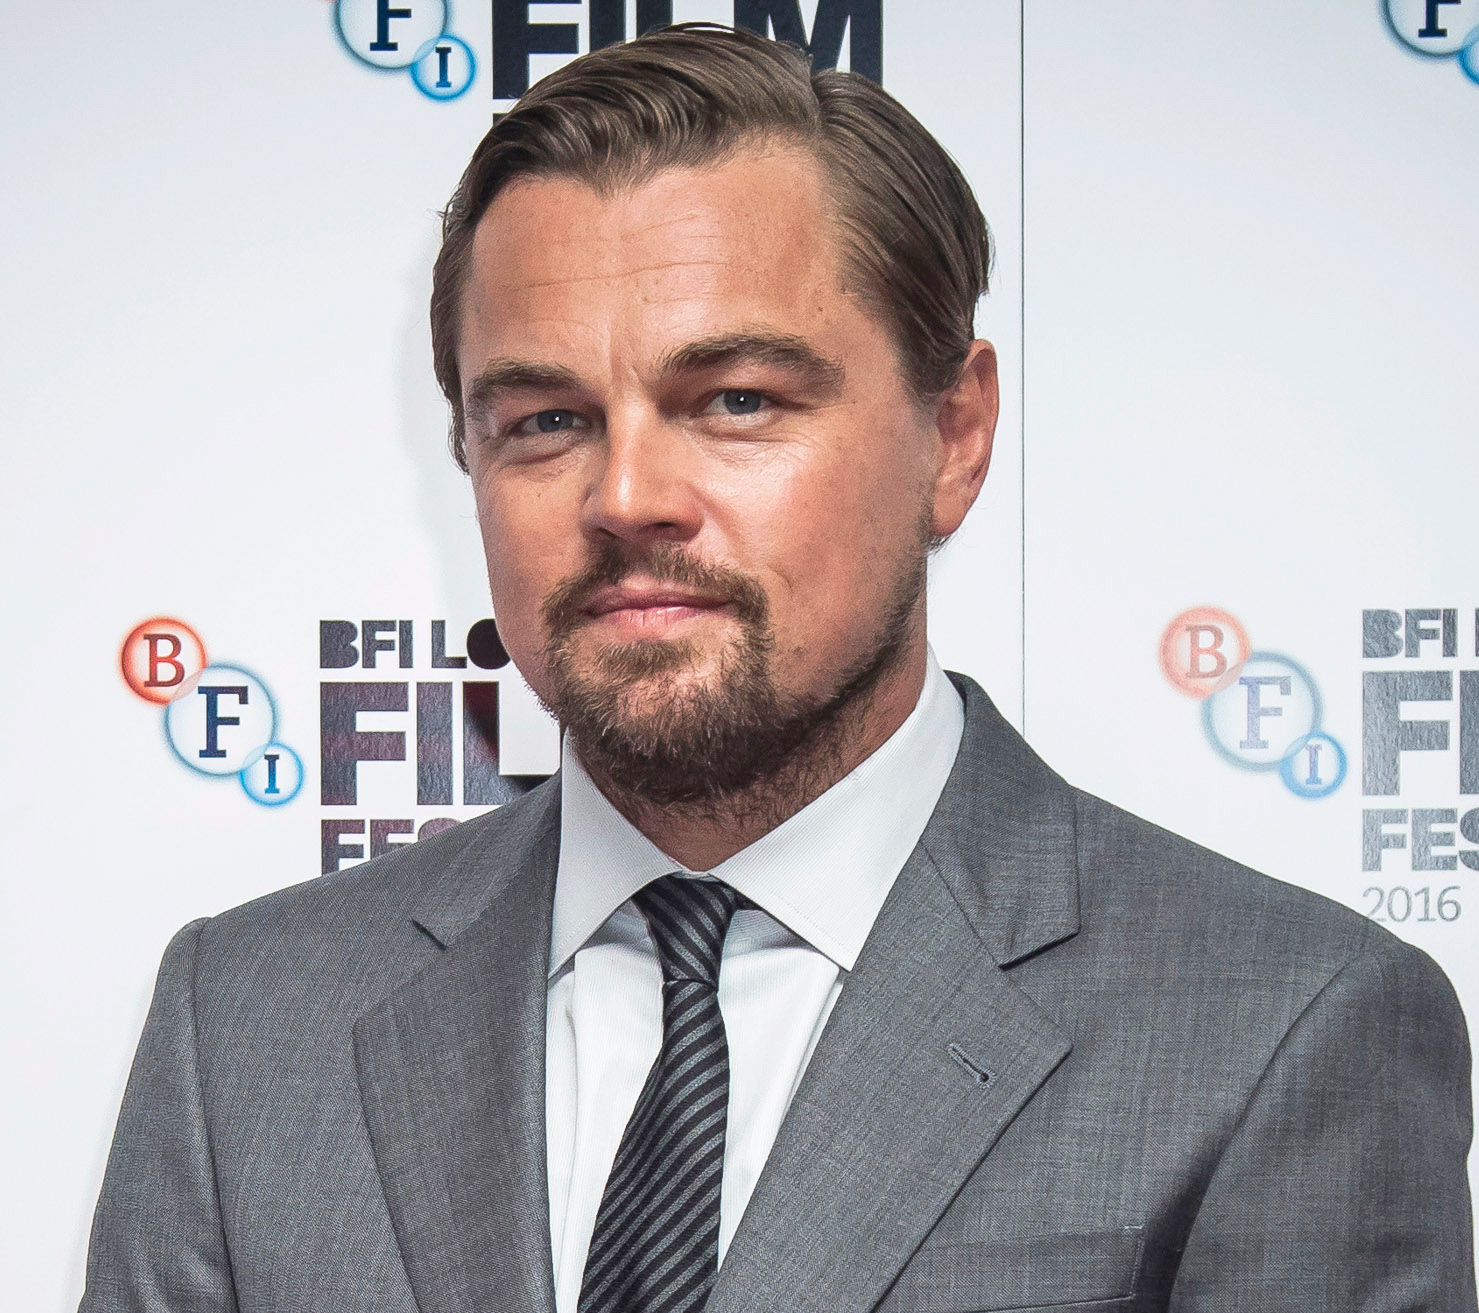 Leonardo DiCaprio Pledges $20 Million to Battle Climate Change